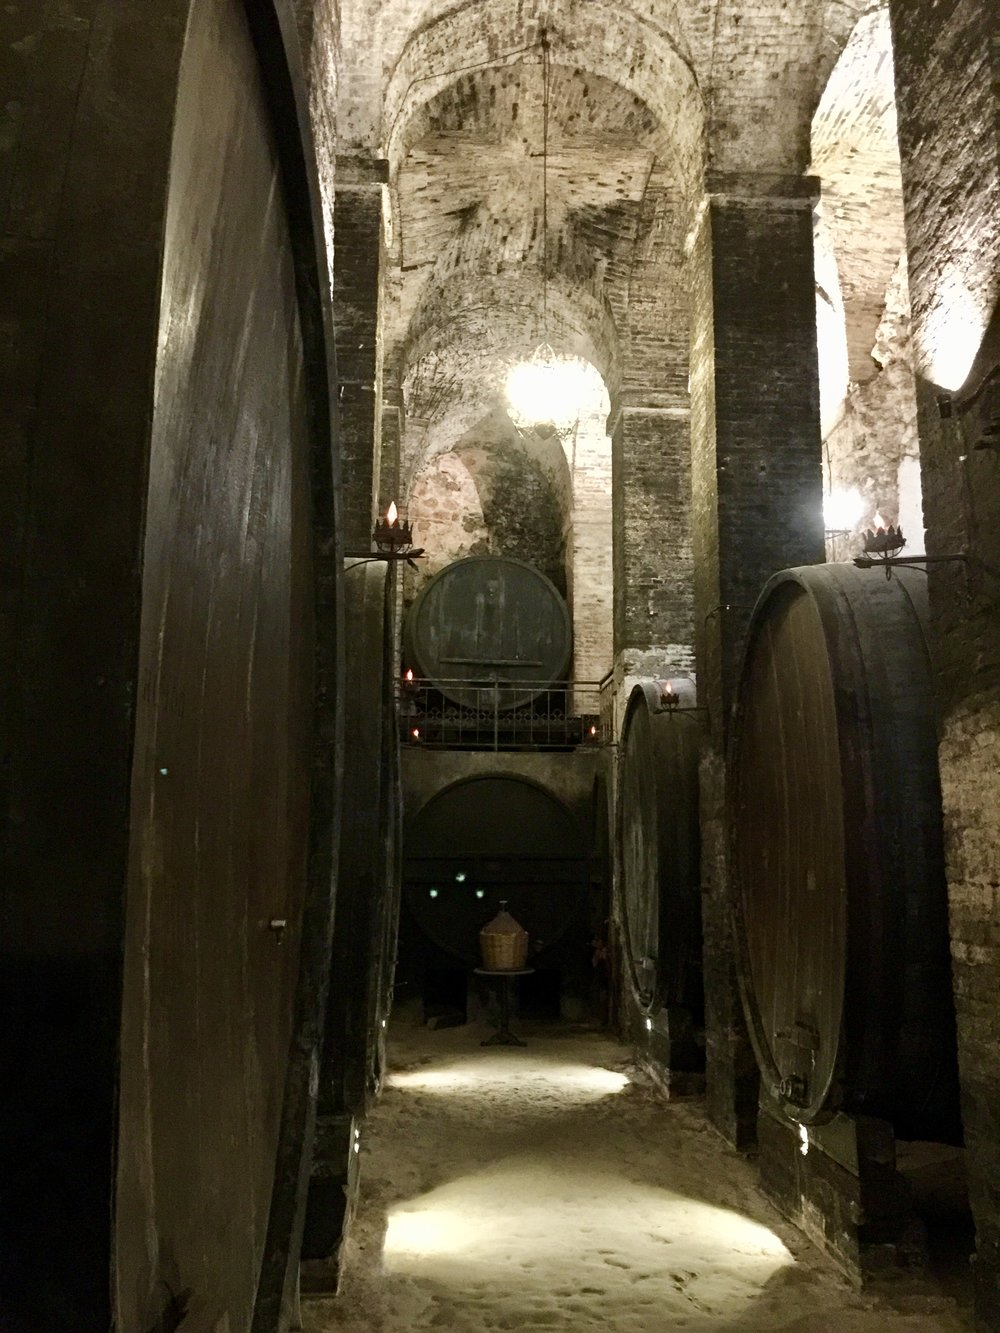 Copy of  Underground cathedral cellar at De'Ricci winery in Montepulciano.